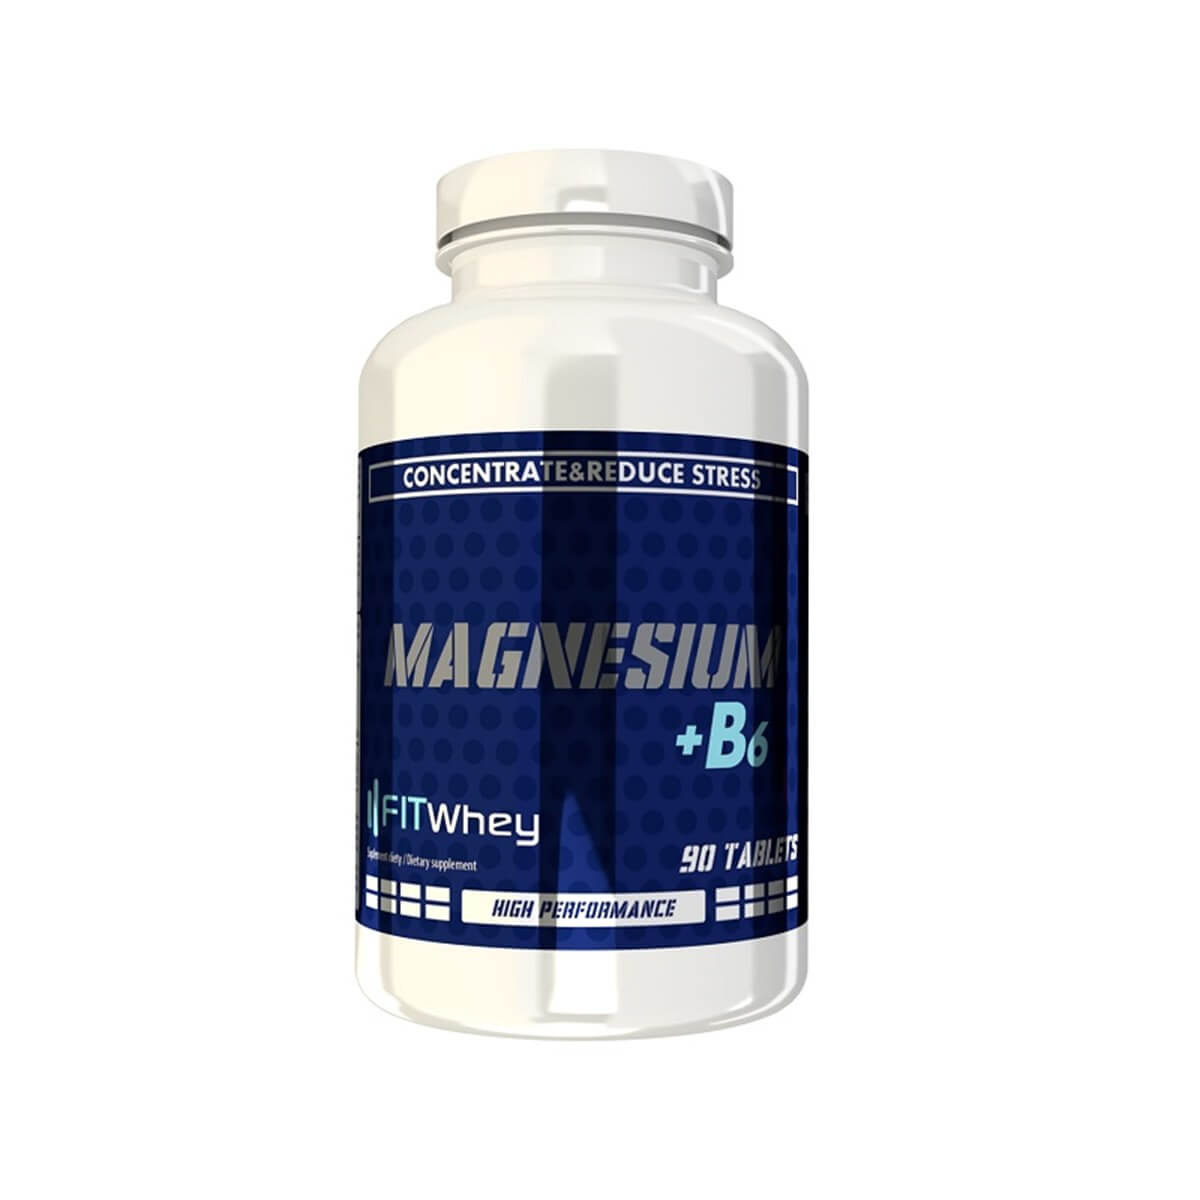 FITWhey Magnesium + B6 90tabs